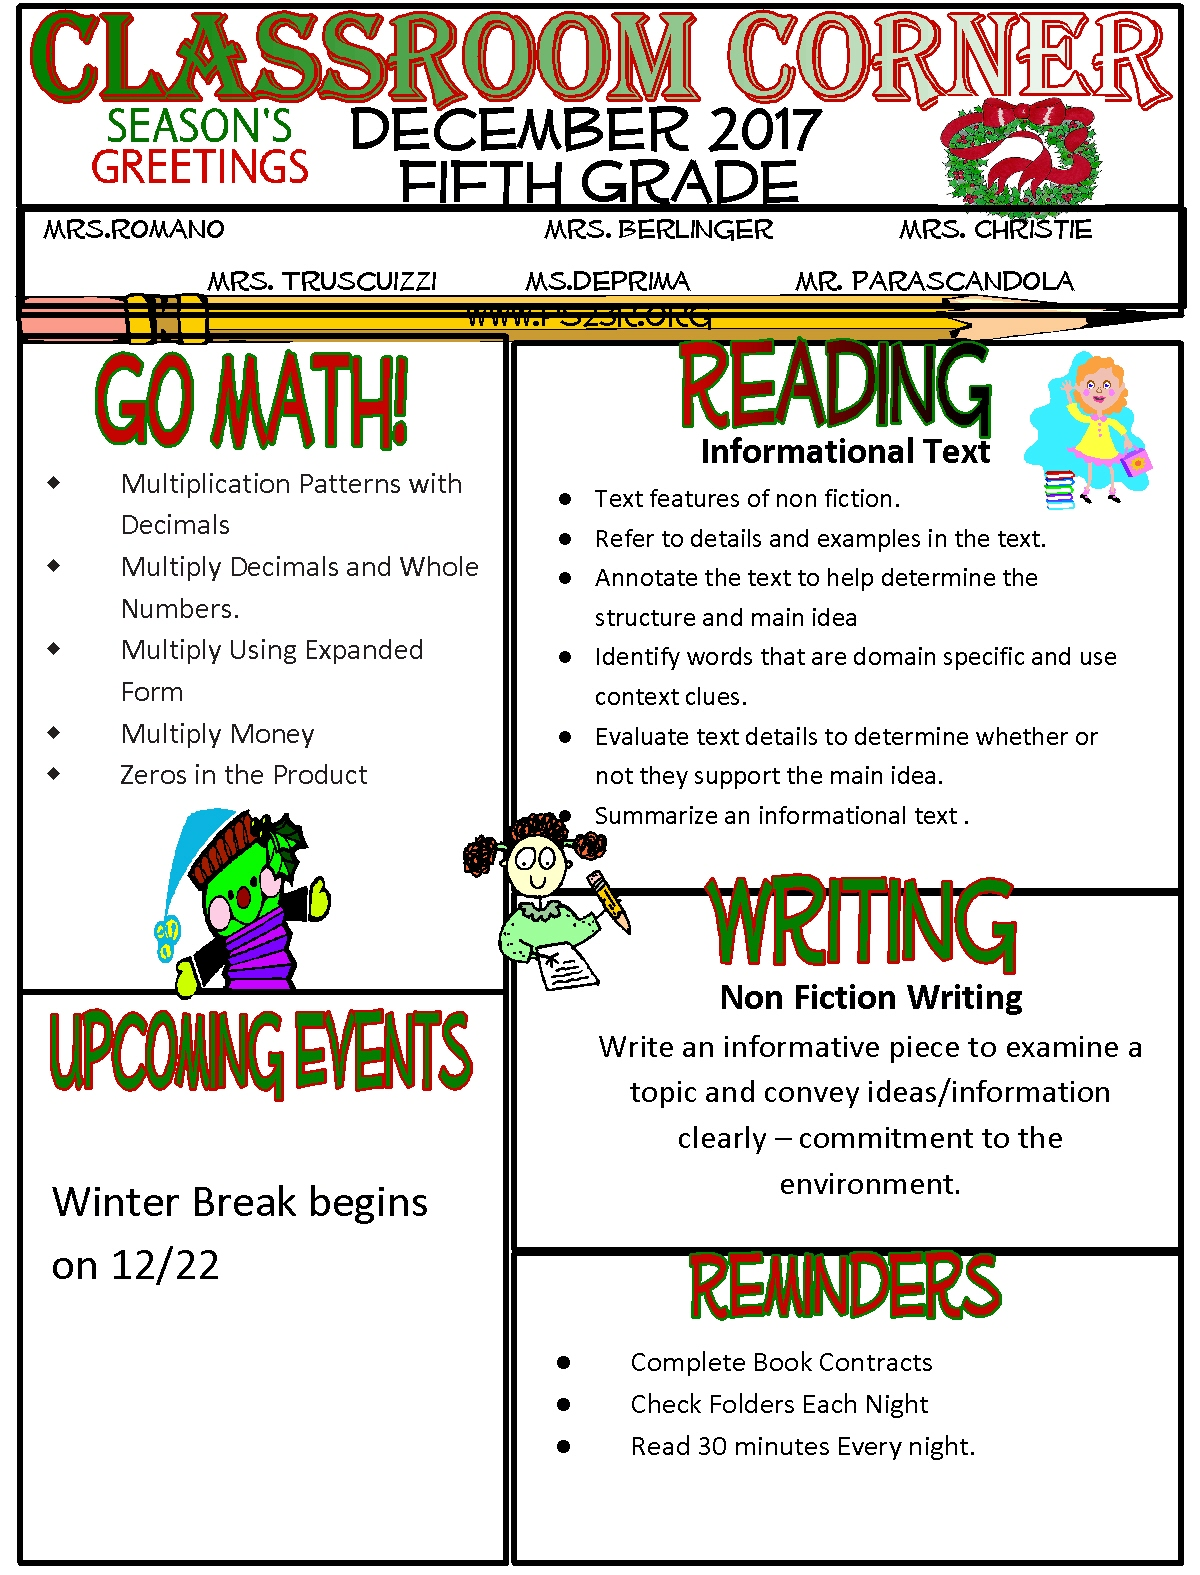 Classroom corner newsletters ps 23 the richmondtown school grade 5 falaconquin